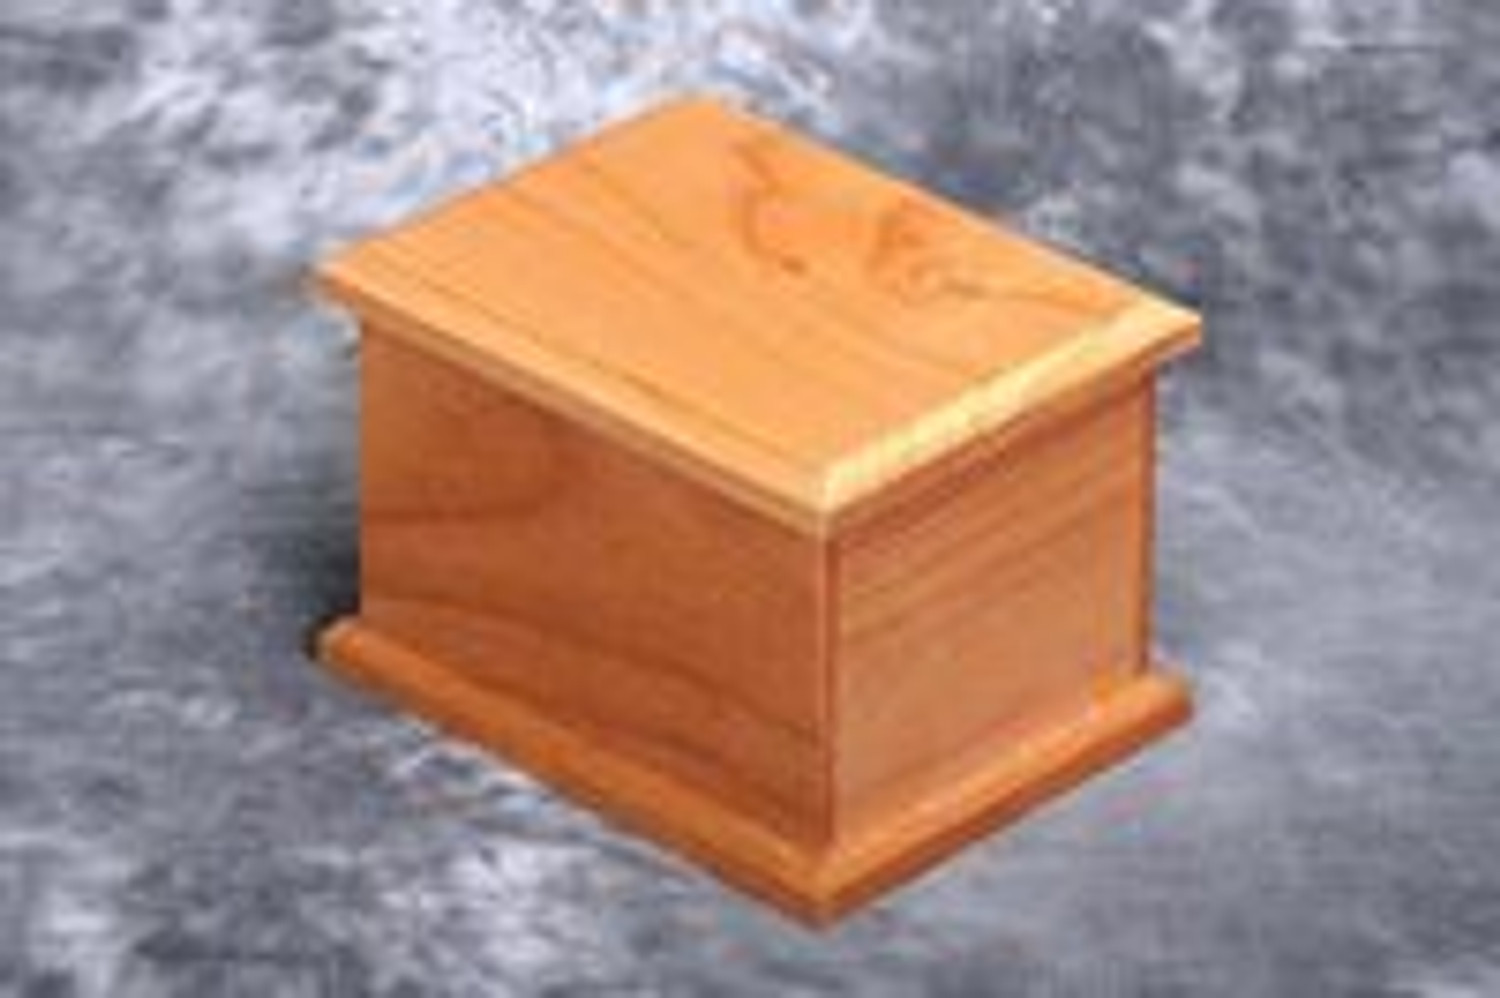 Simple, well crafted, and affordable Alder Wood Urns